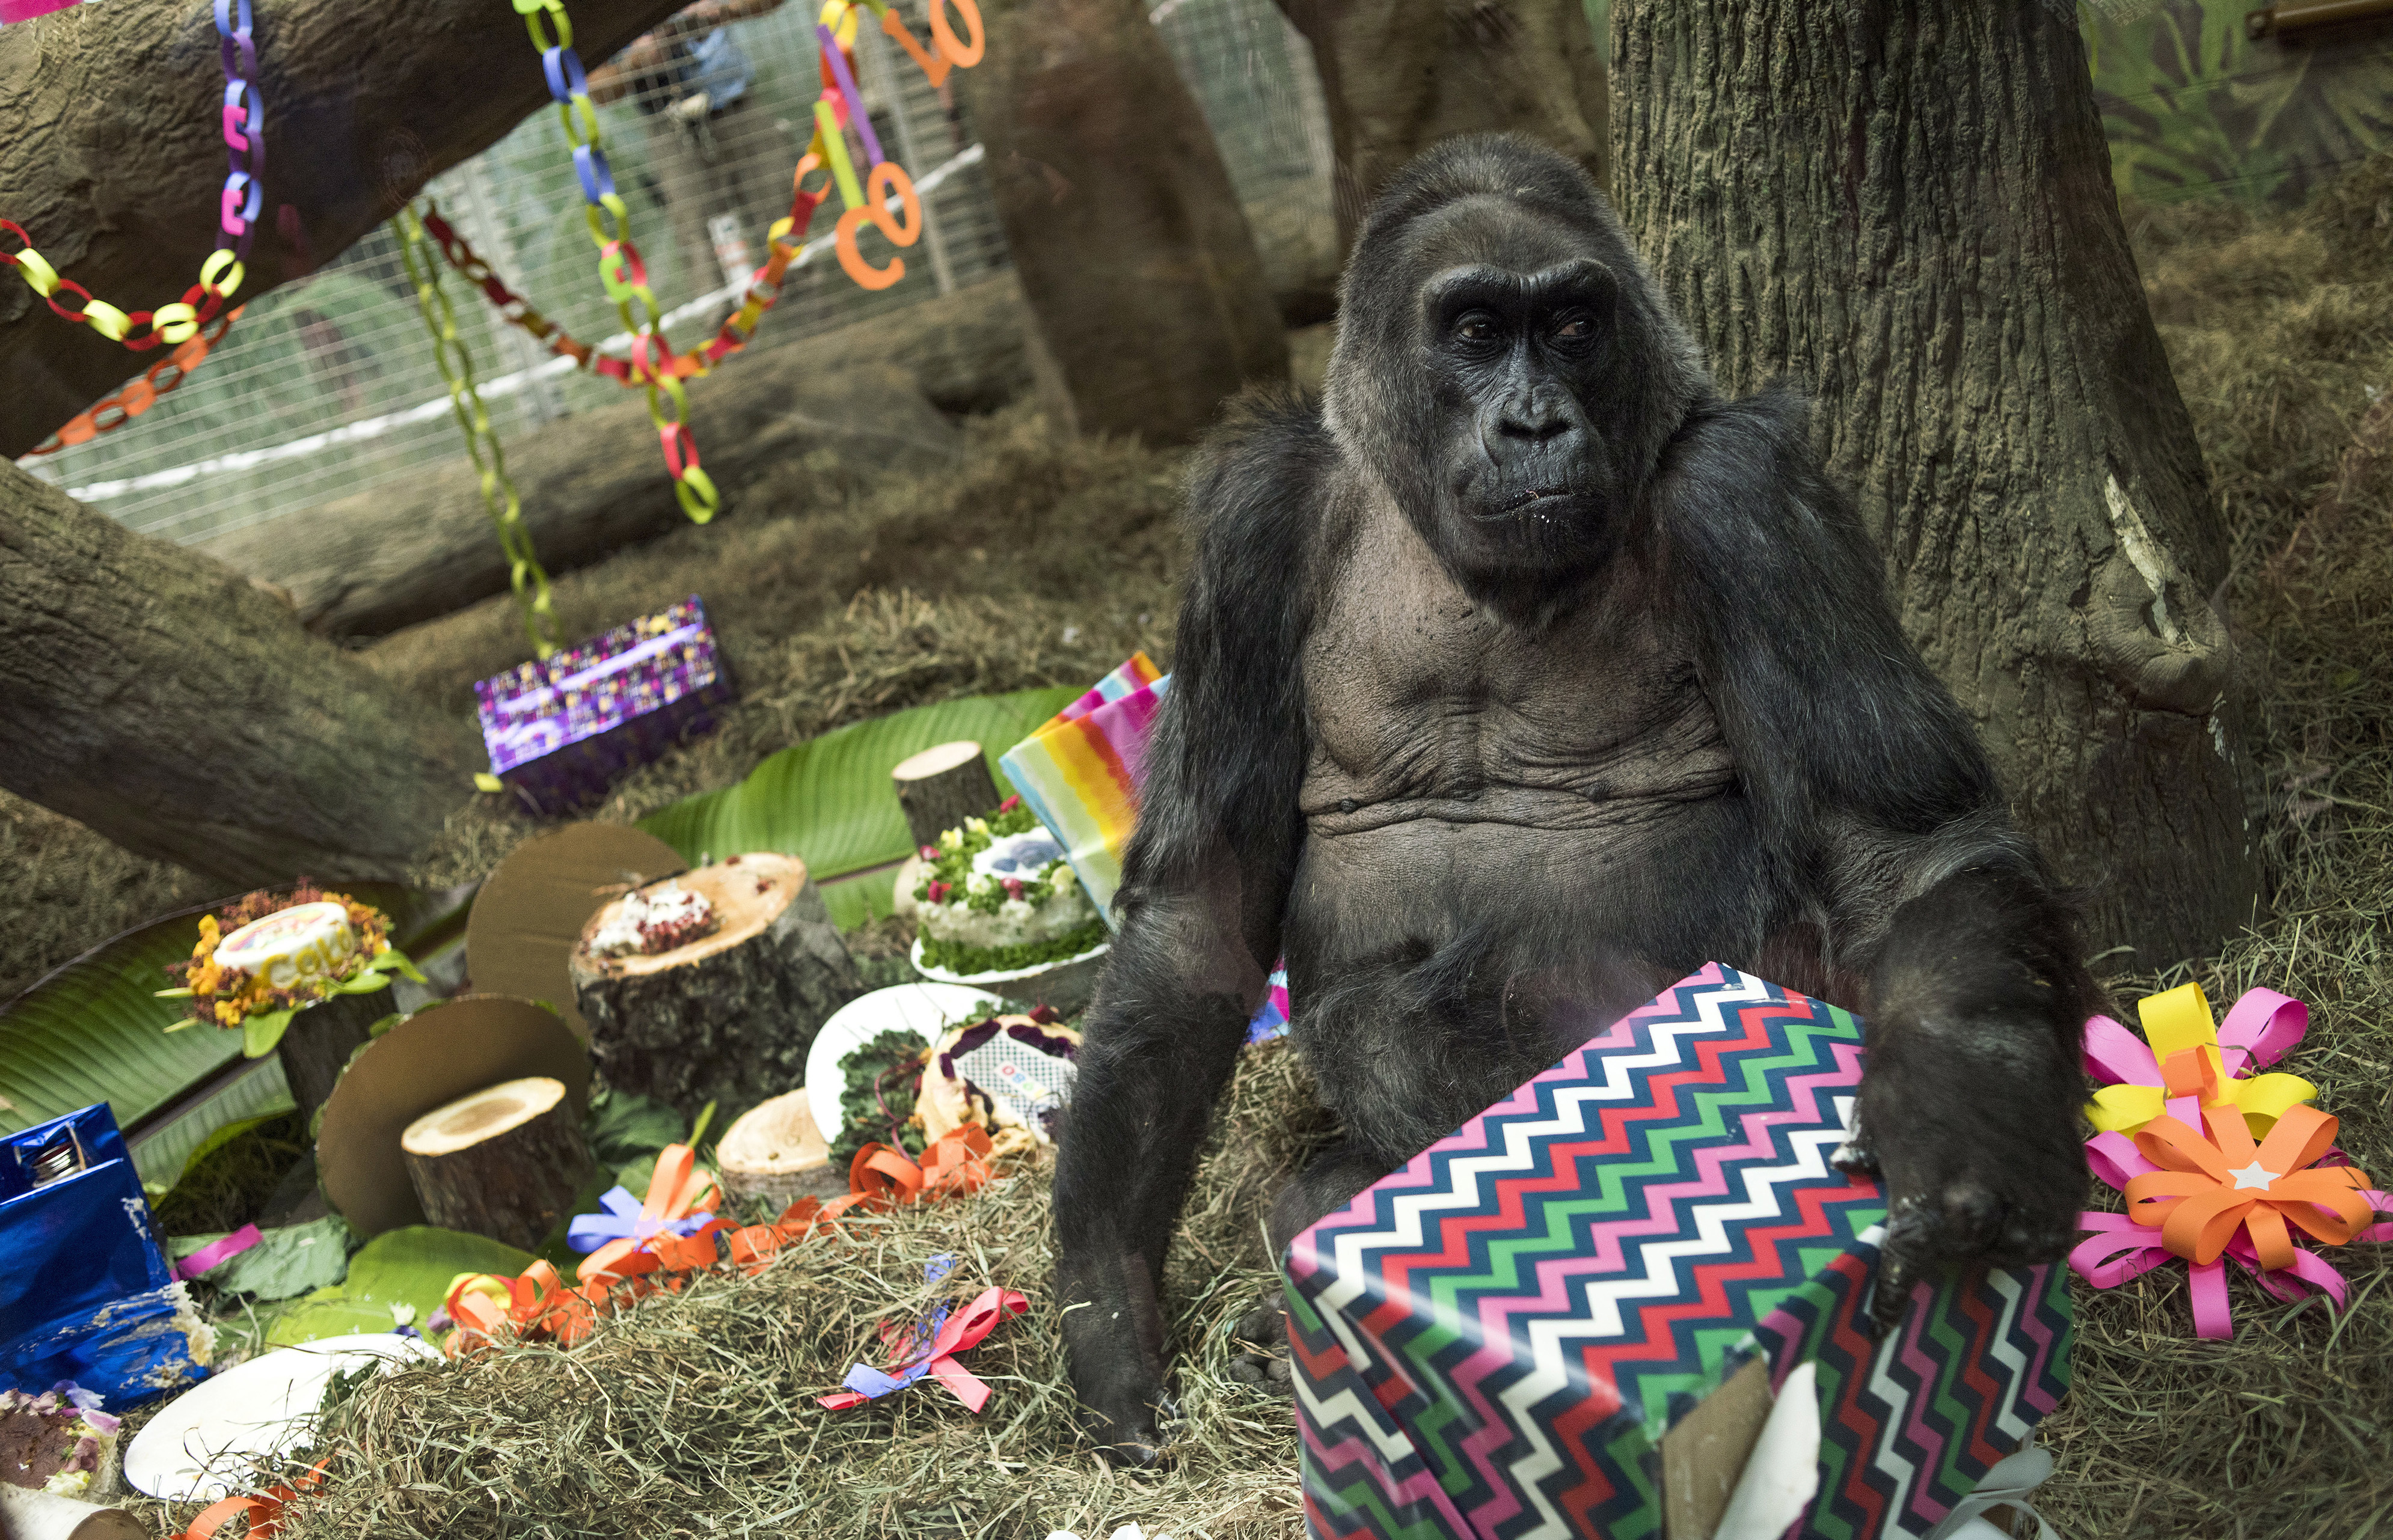 Colo, the world's first gorilla born in a zoo, opens a present in her enclosure during her 60th birthday party at the Columbus Zoo and Aquarium in Columbus, Ohio on Dec. 22, 2016. (AP Photo/Ty Wright)